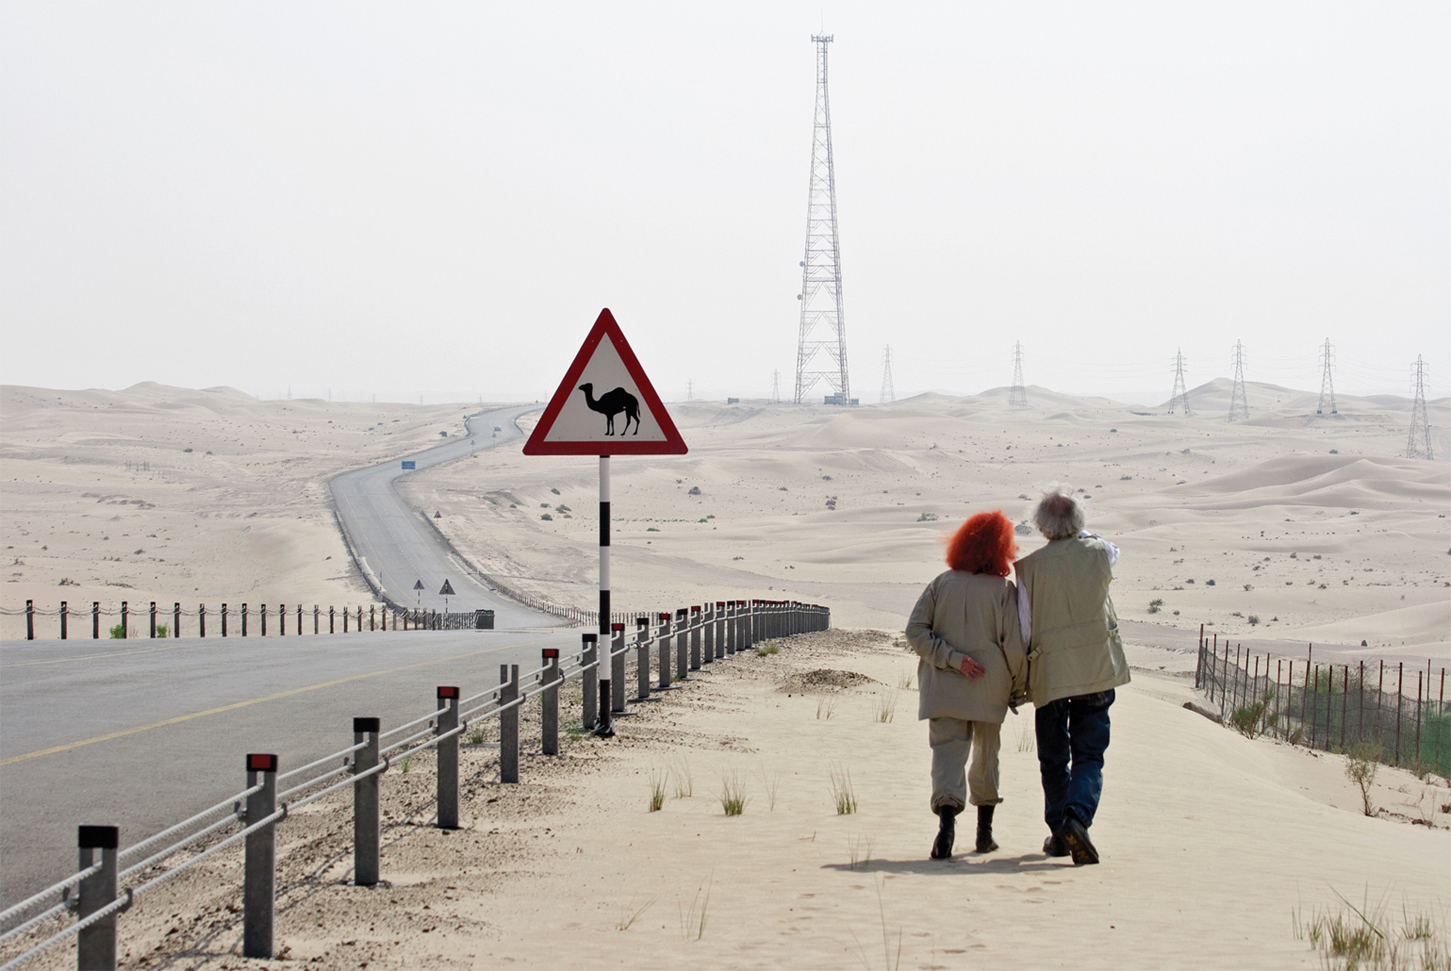 Christo and Jeanne-Claude scouting locations for the site of The Mastaba, October 2007, Photo: Wolfgang Volz, © 2007 Christo